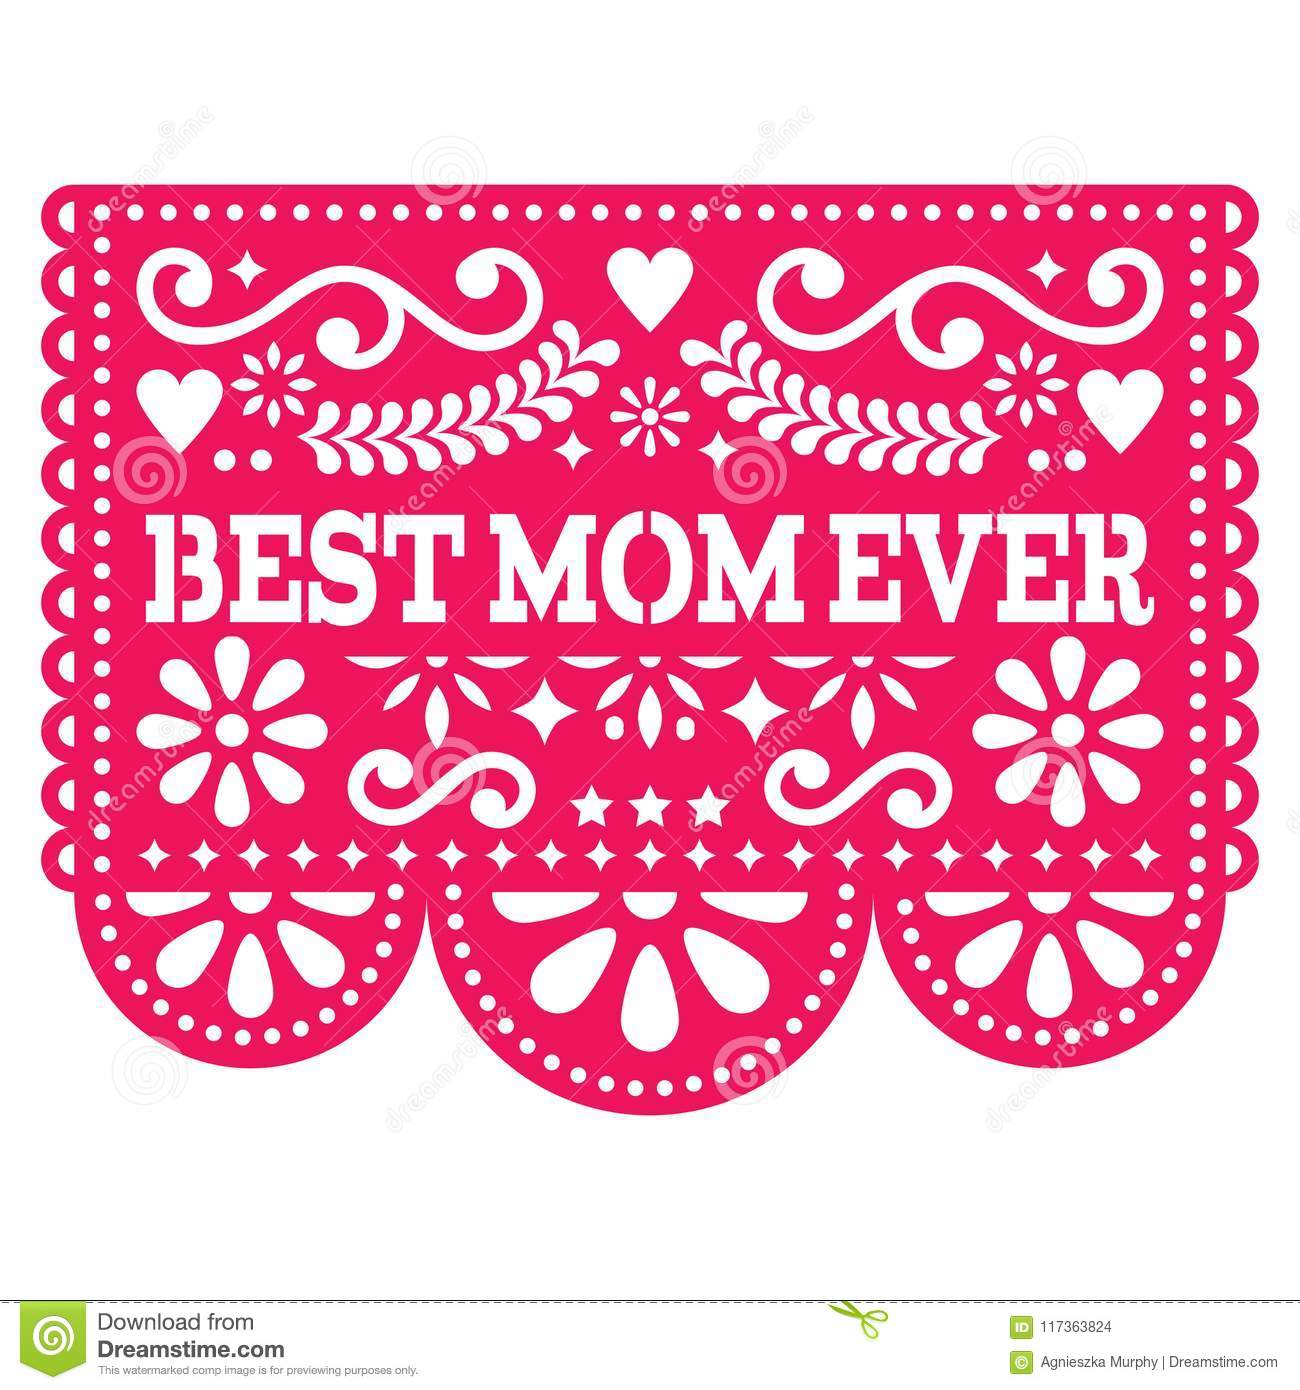 Best mom ever vector greeting card happy mothers day mexican download best mom ever vector greeting card happy mothers day mexican design m4hsunfo